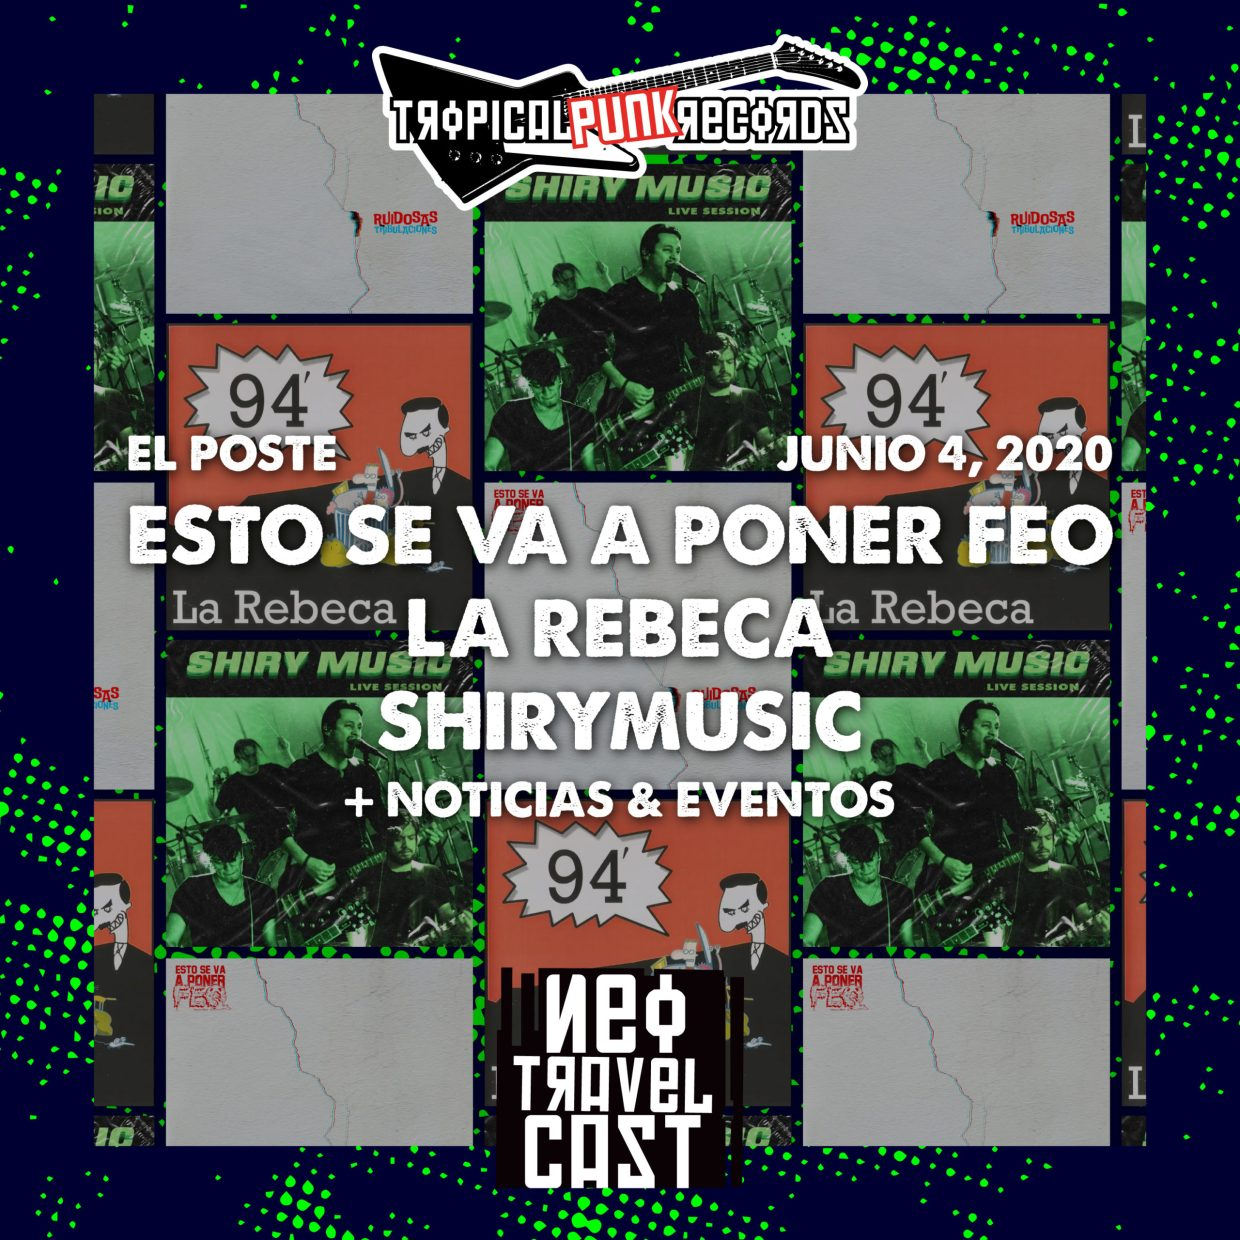 Tropical Punk Records presenta el Neo Travel Cast podcast El Poste con Esto se va a poner feo, La Rebeca y Shirymusic (Episodio 15)